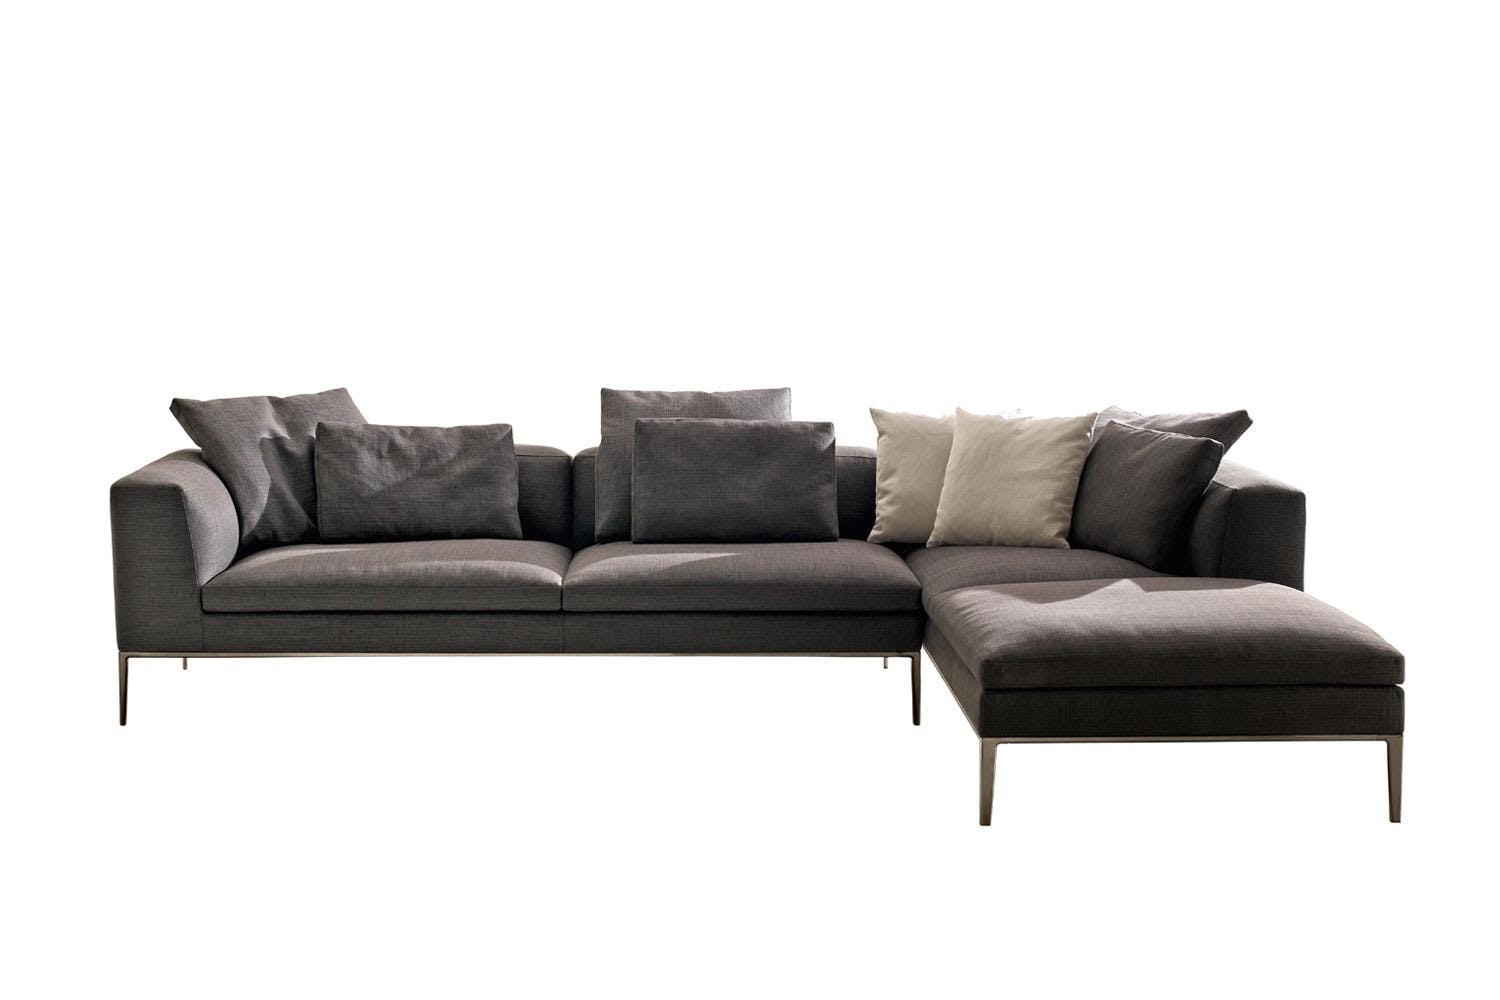 michel sofa by antonio citterio for b b italia space. Black Bedroom Furniture Sets. Home Design Ideas